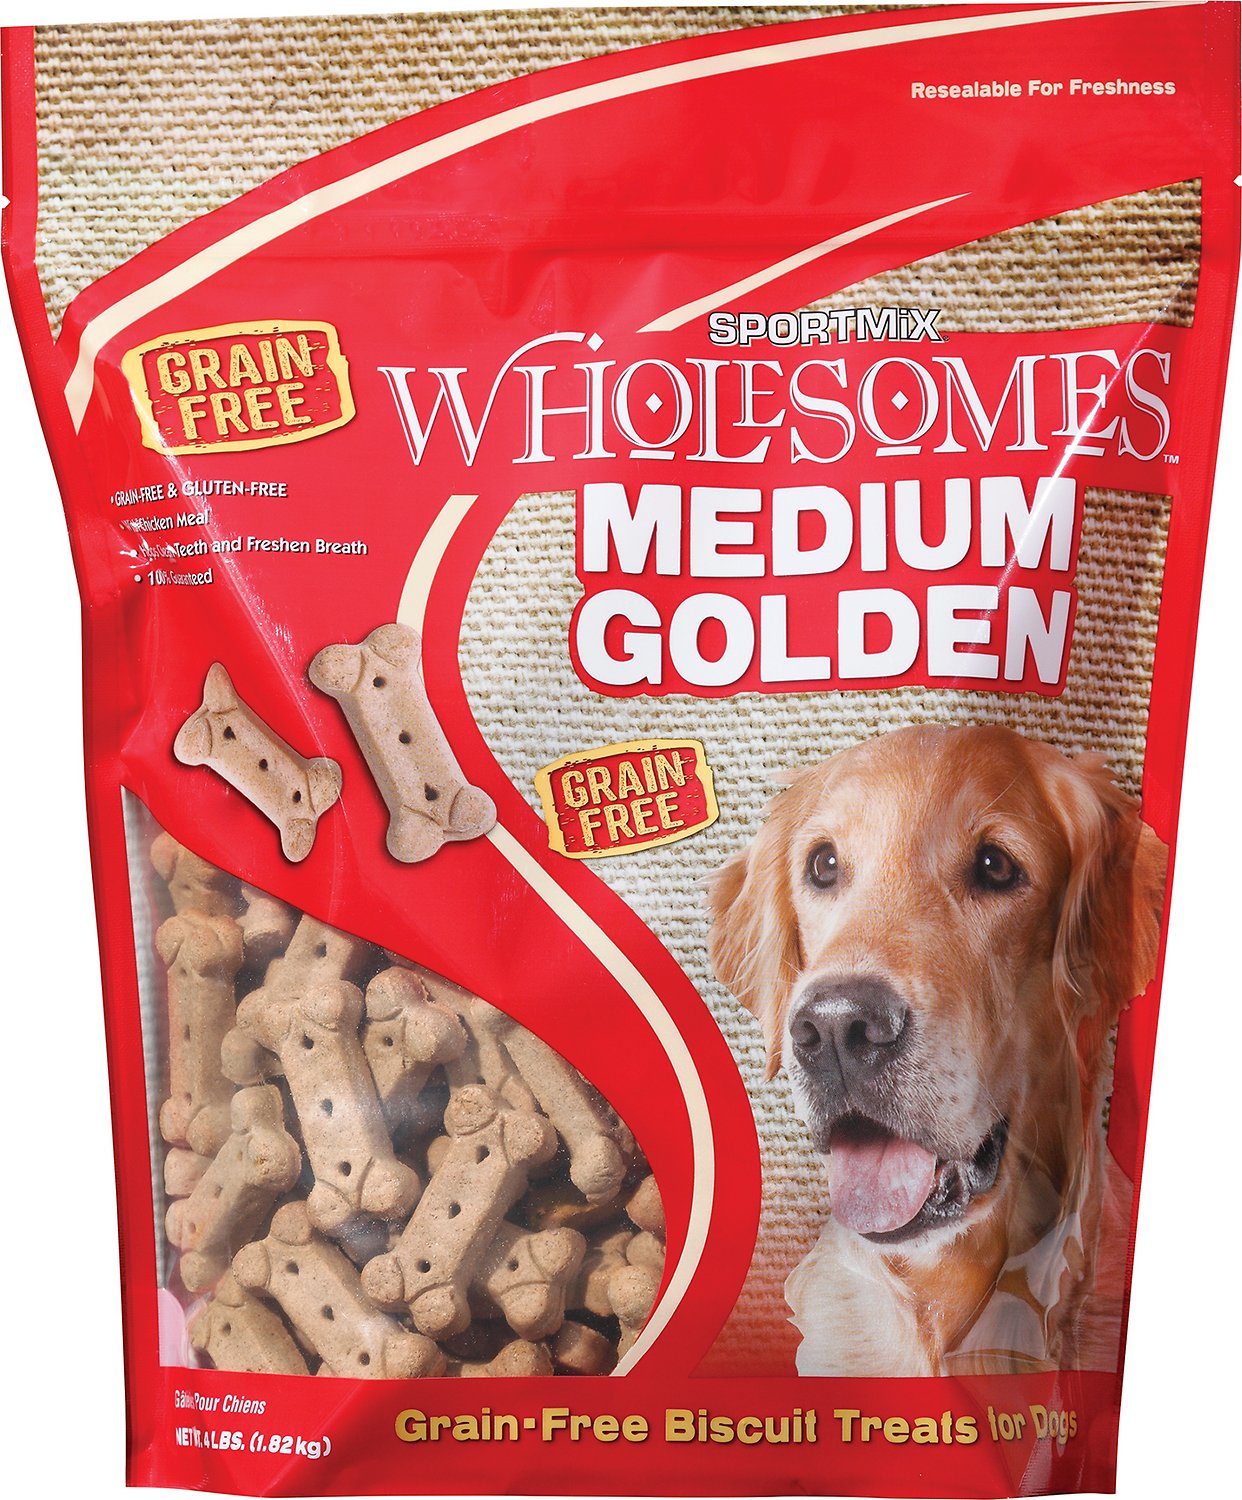 SPORTMiX Wholesomes Grain-Free Medium Golden Biscuit Dog Treats